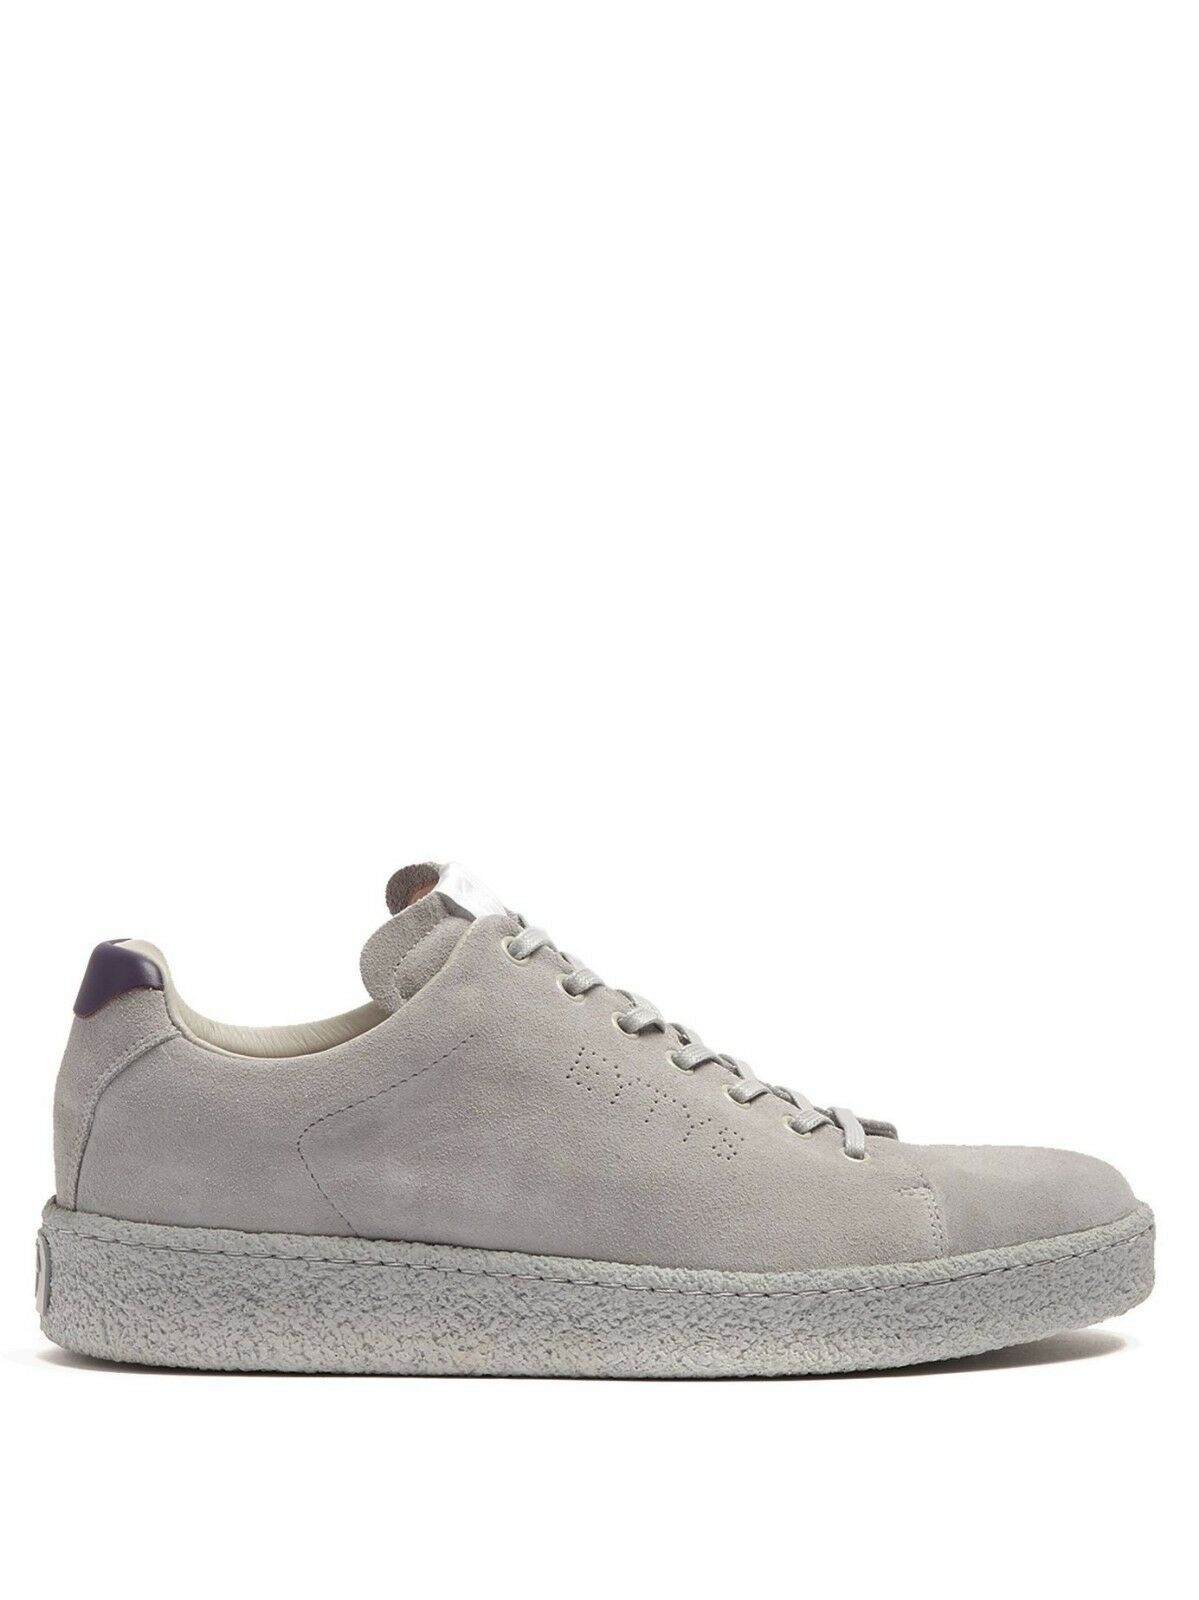 BRAND NEW EYTYS 'ACE' GREY SUEDE  SNEAKERS  SIZE 44 ()